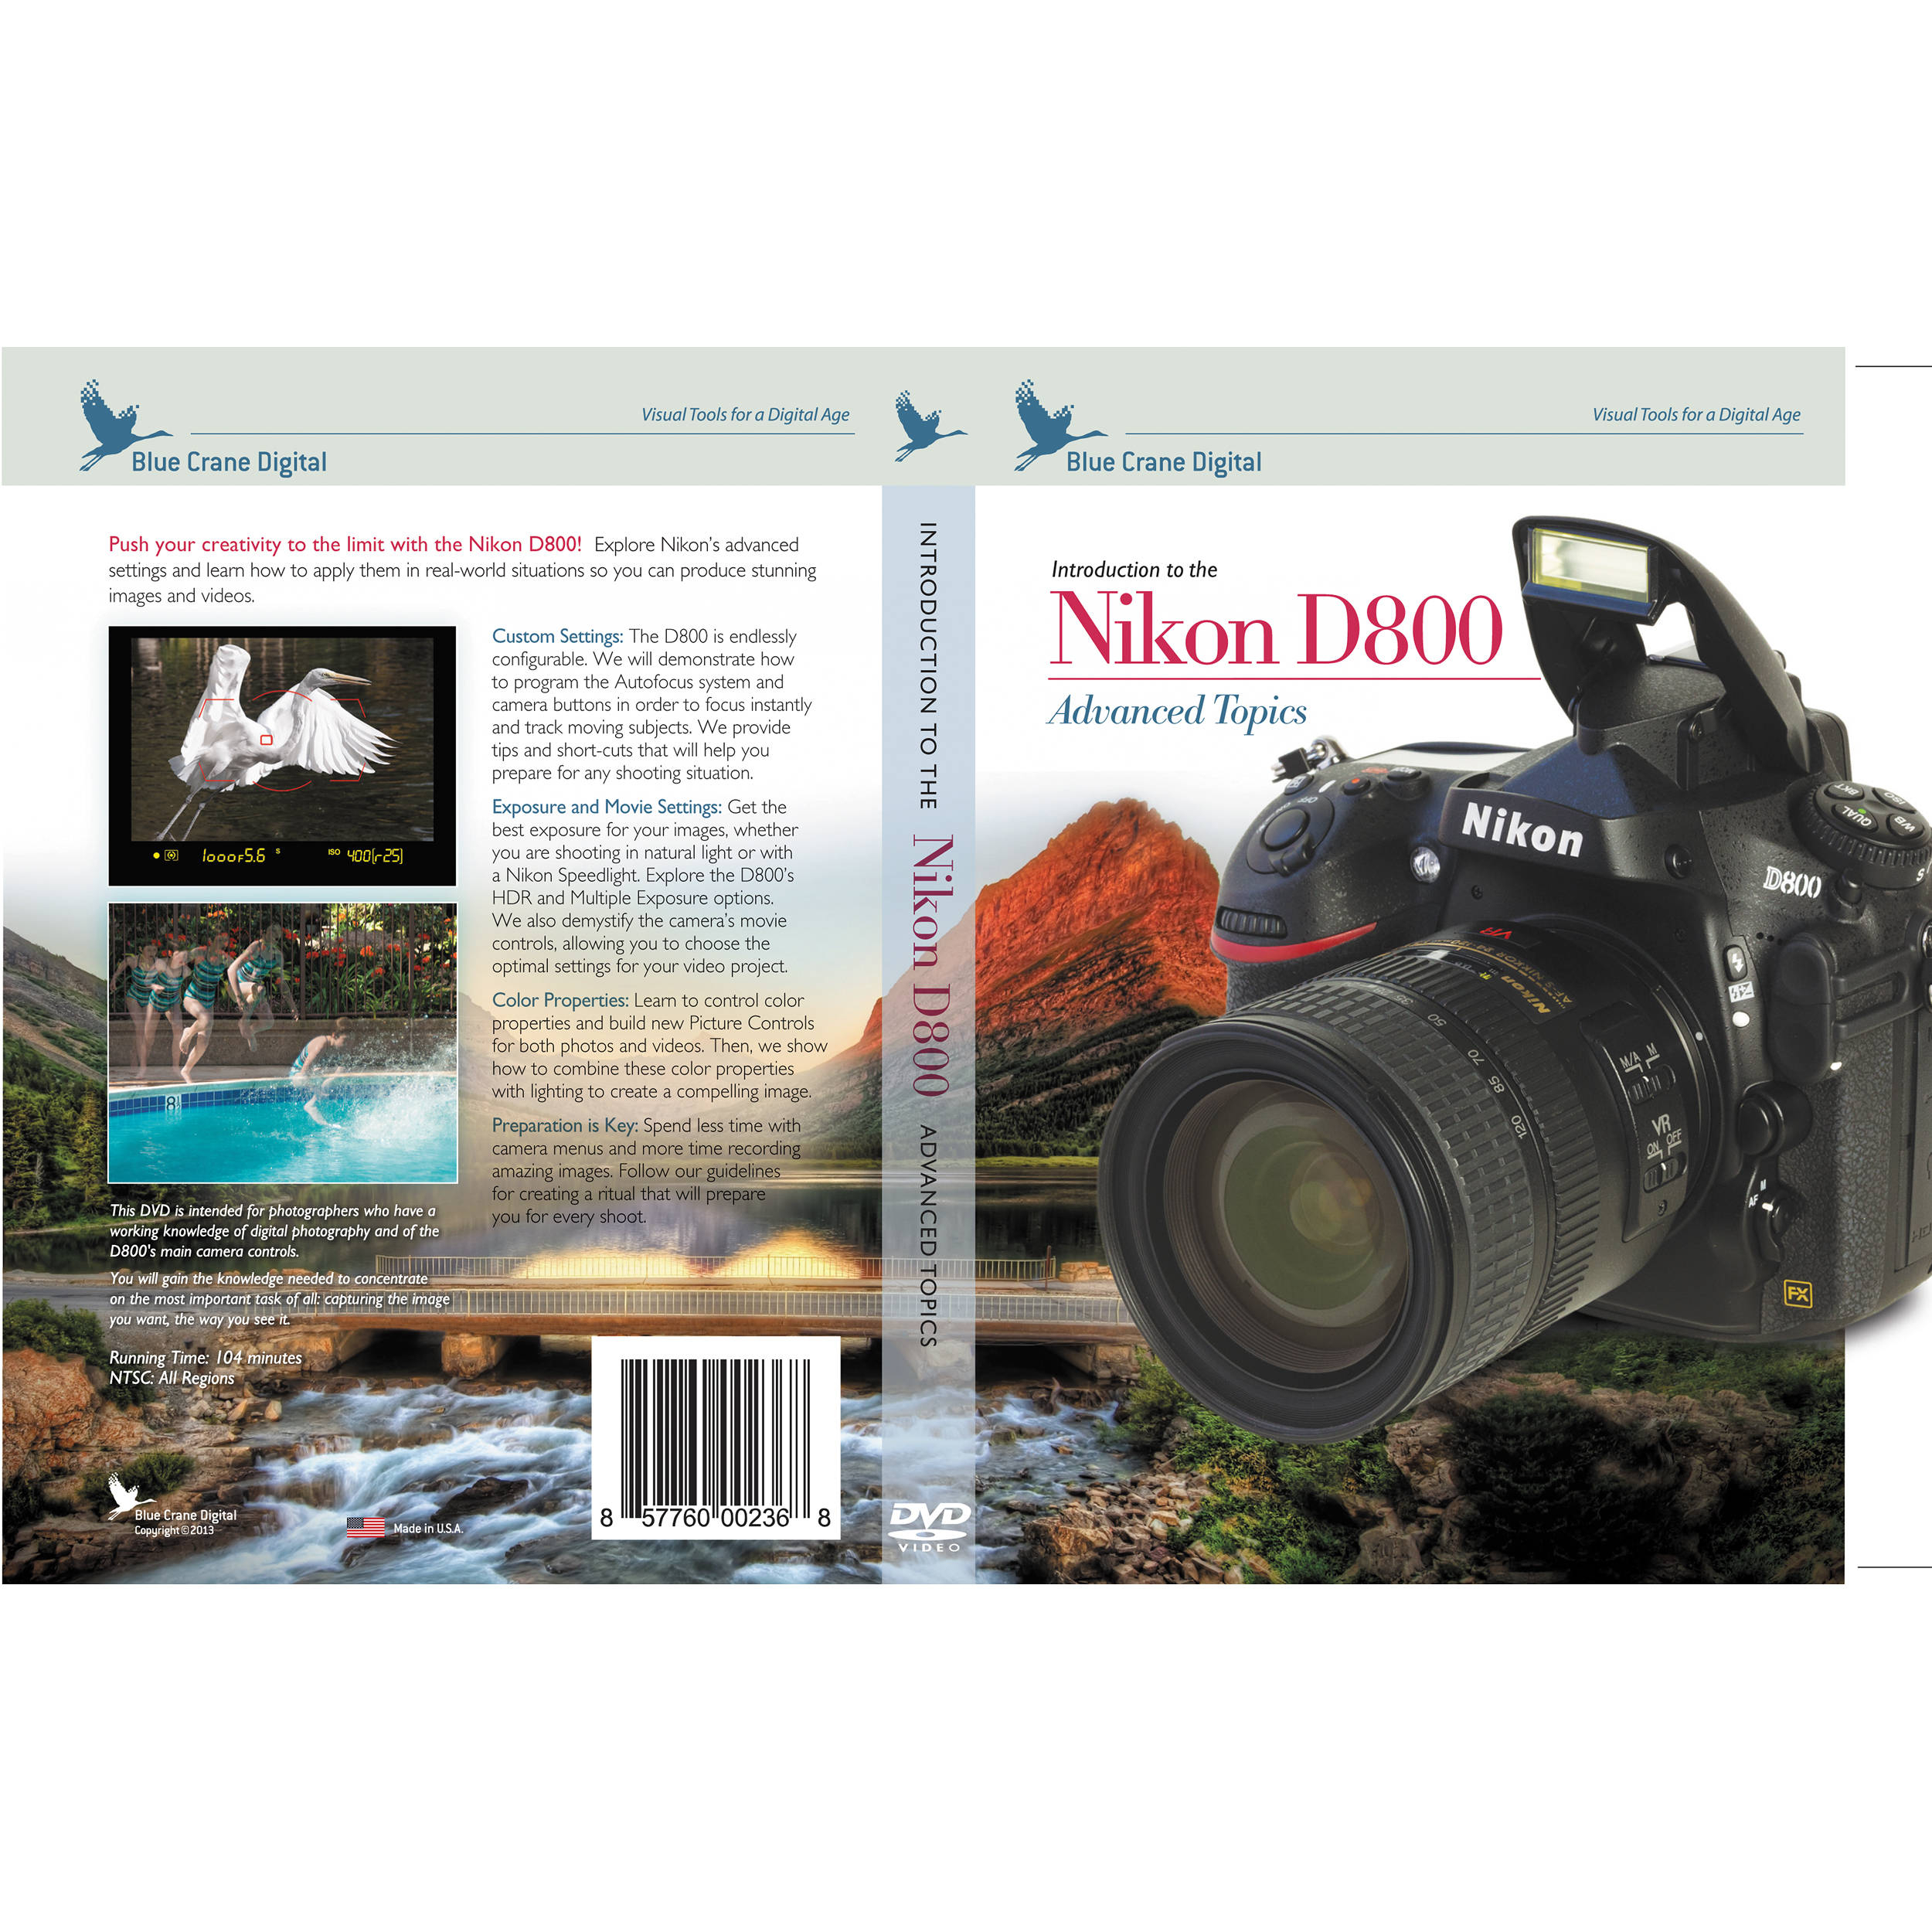 Nikon D800 Settings Spreadsheet Pertaining To Blue Crane Digital Dvd: Introduction To The Nikon D800: Bc152